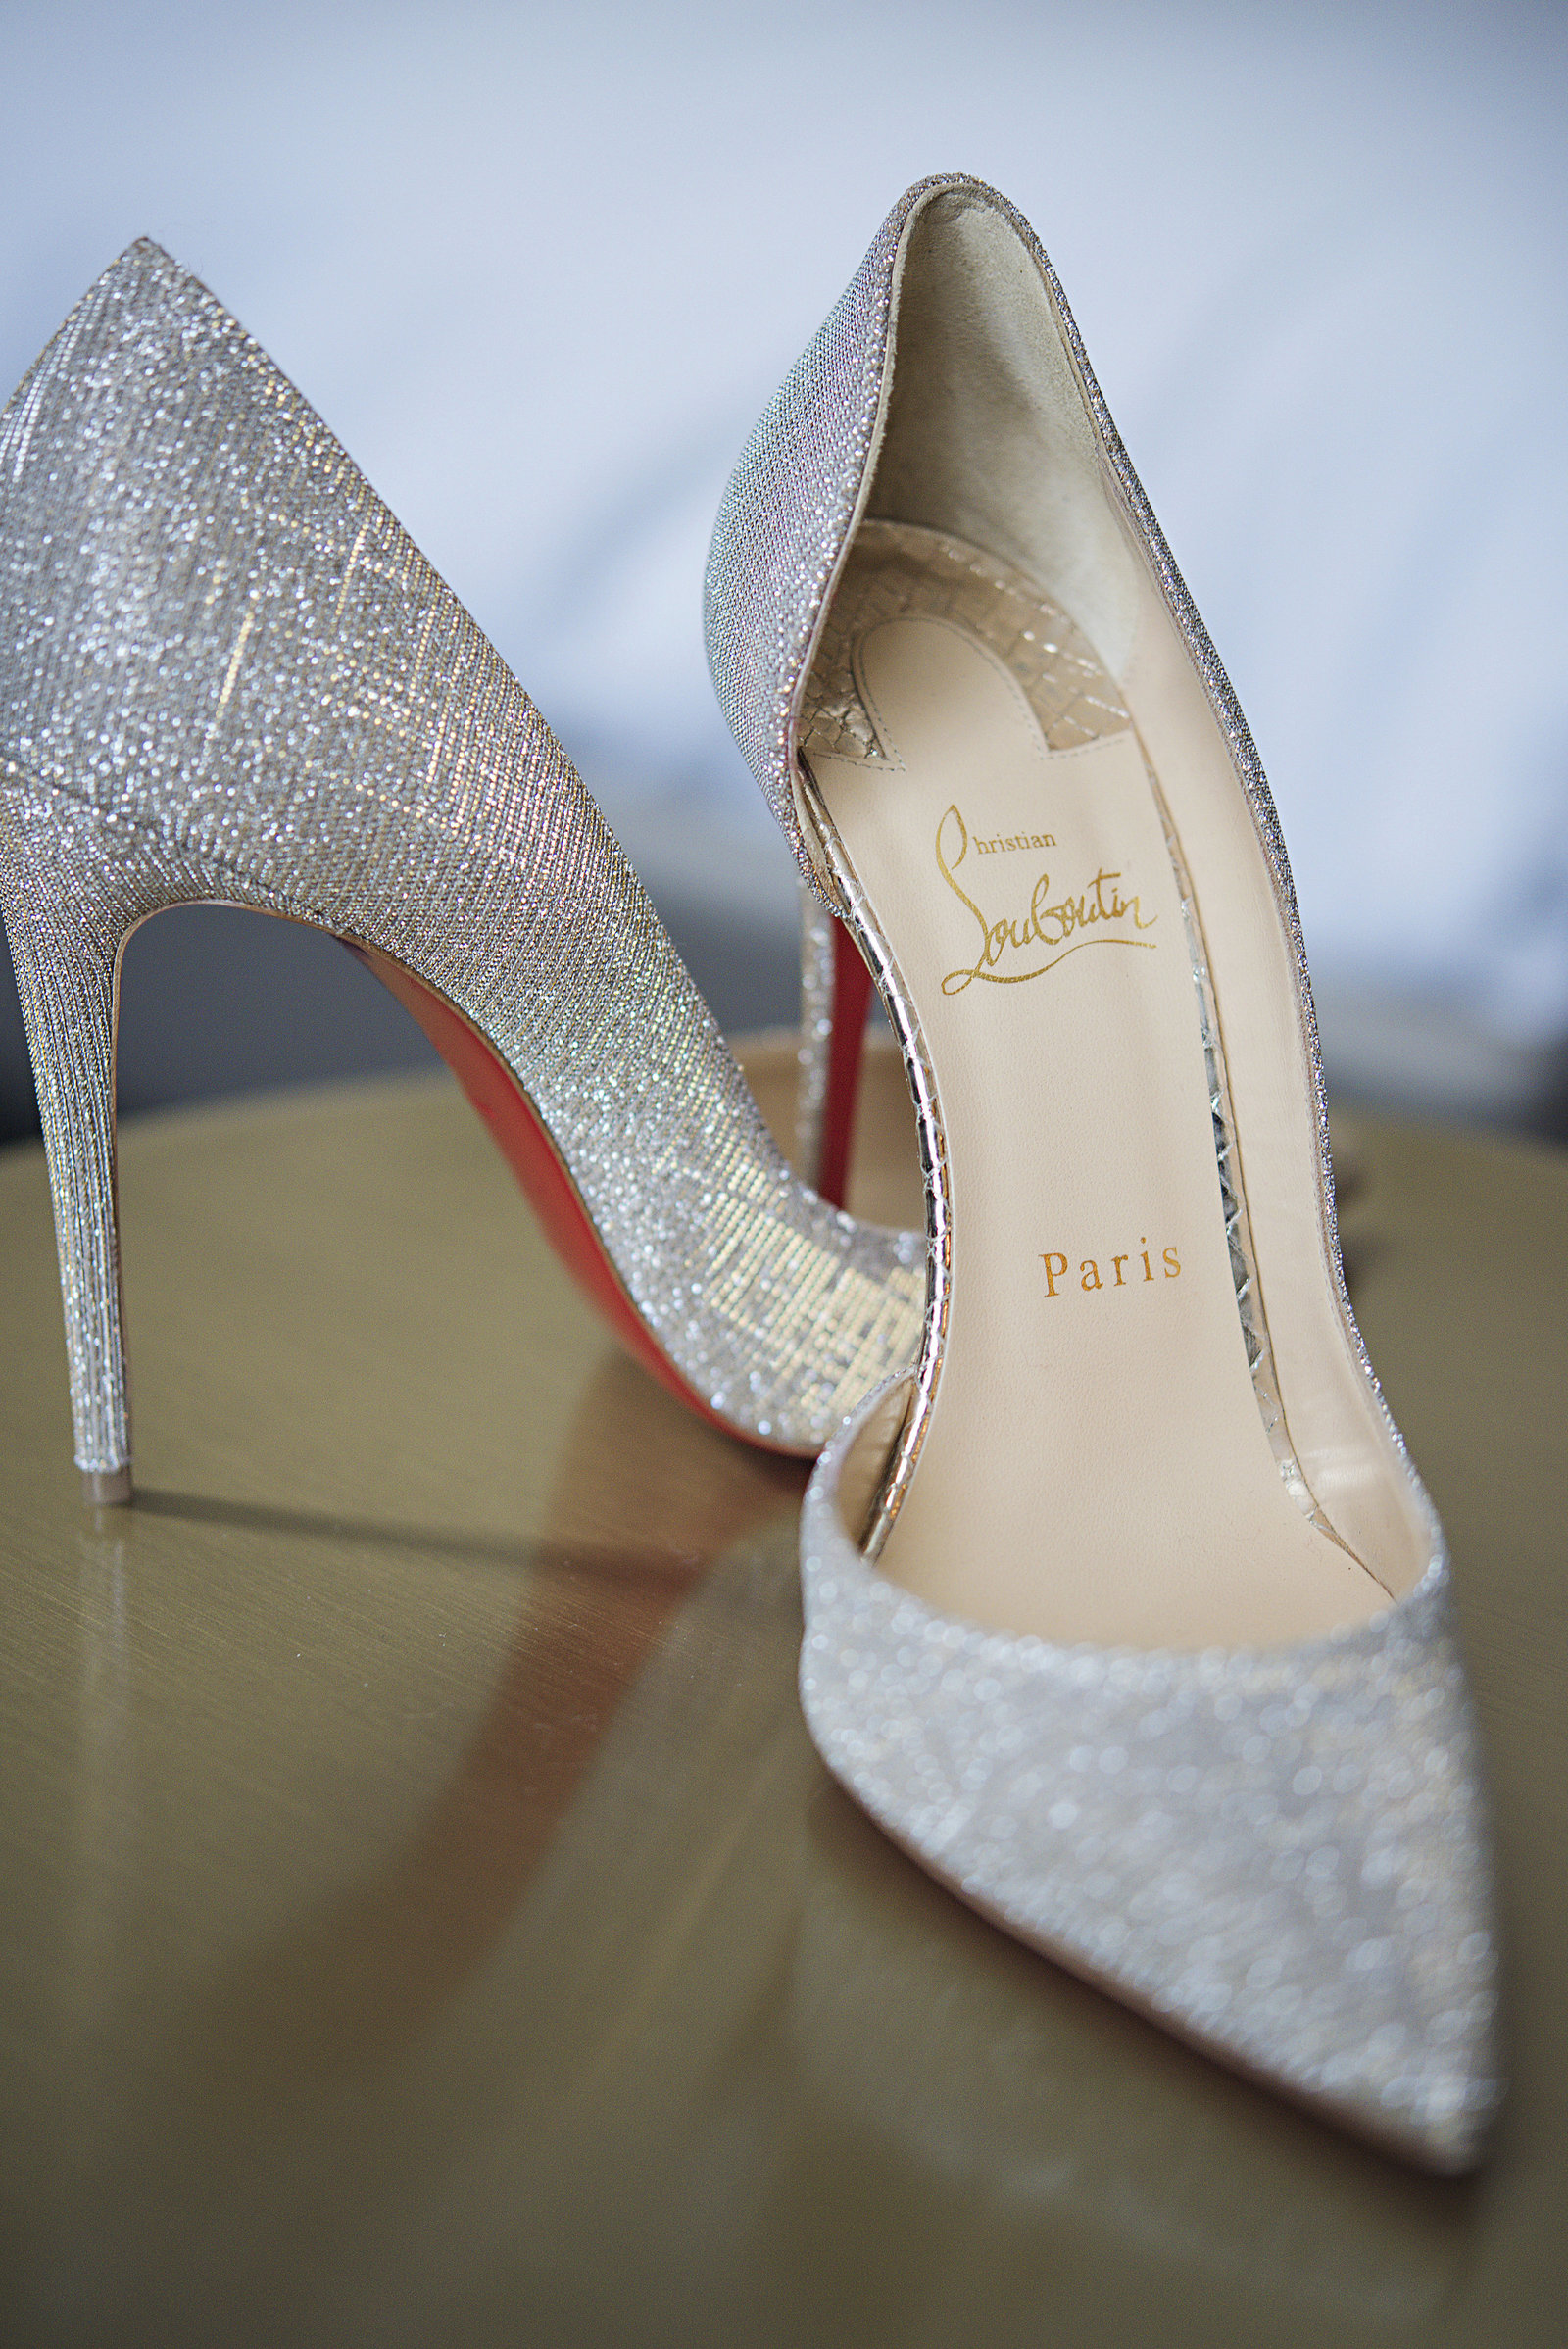 WeddingPlanner_KansasCity_Luxury_Hilton_President_Royals_Player_Louboutin017